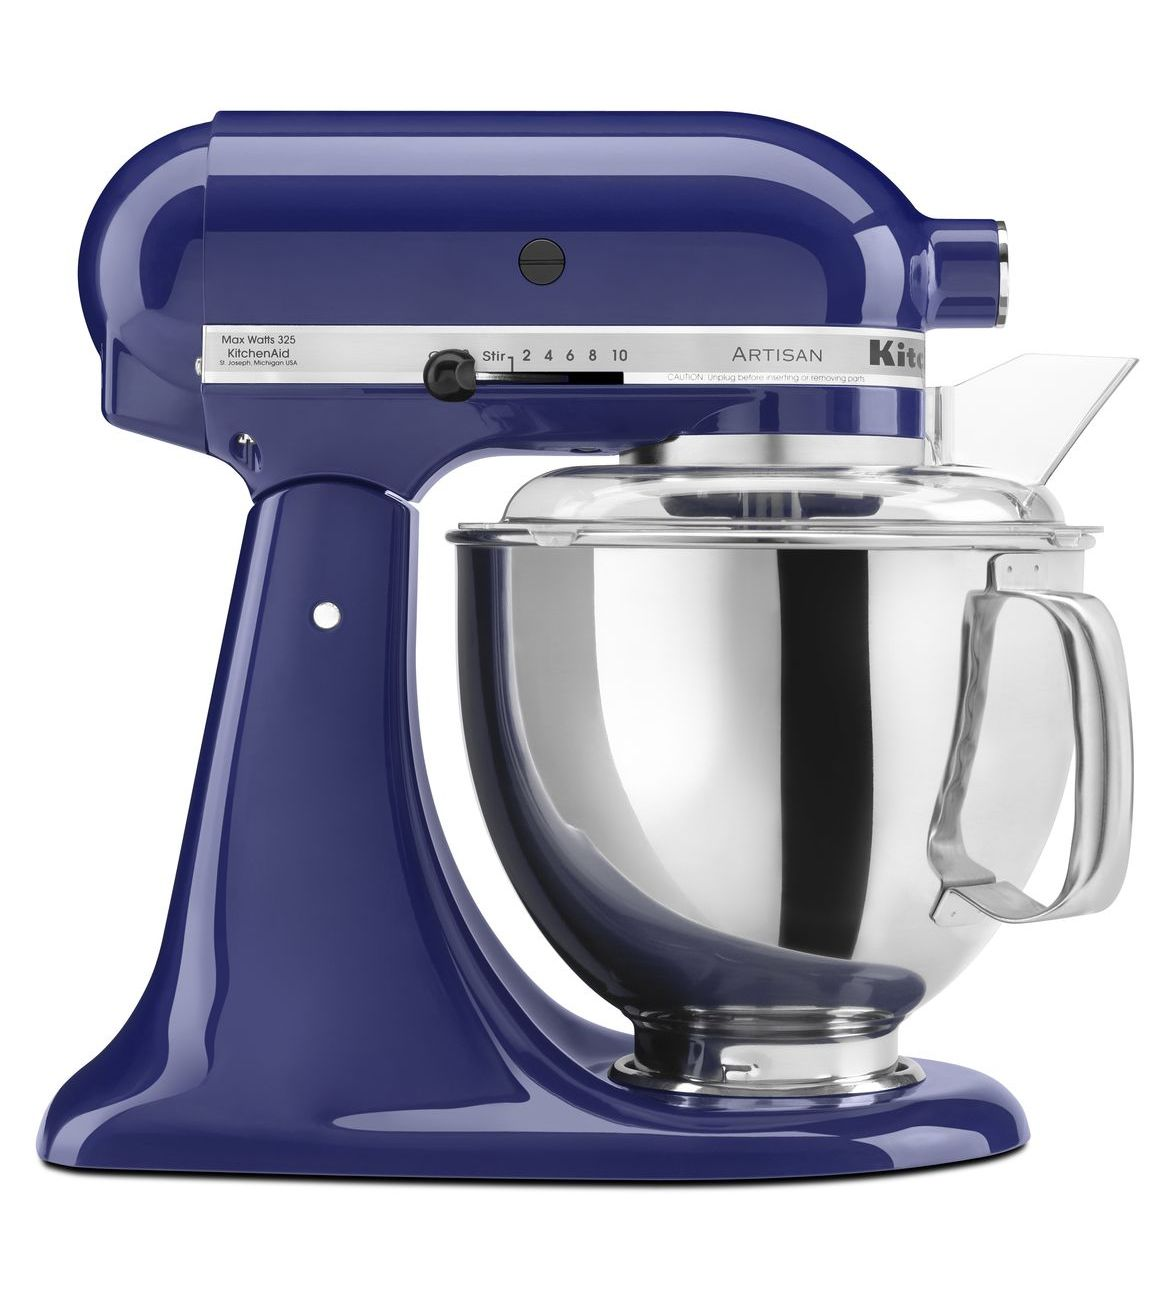 KitchenAid® Refurbished Artisan® Series 5 Quart Tilt-Head Stand Mixer, RRK150 Cobalt Blue